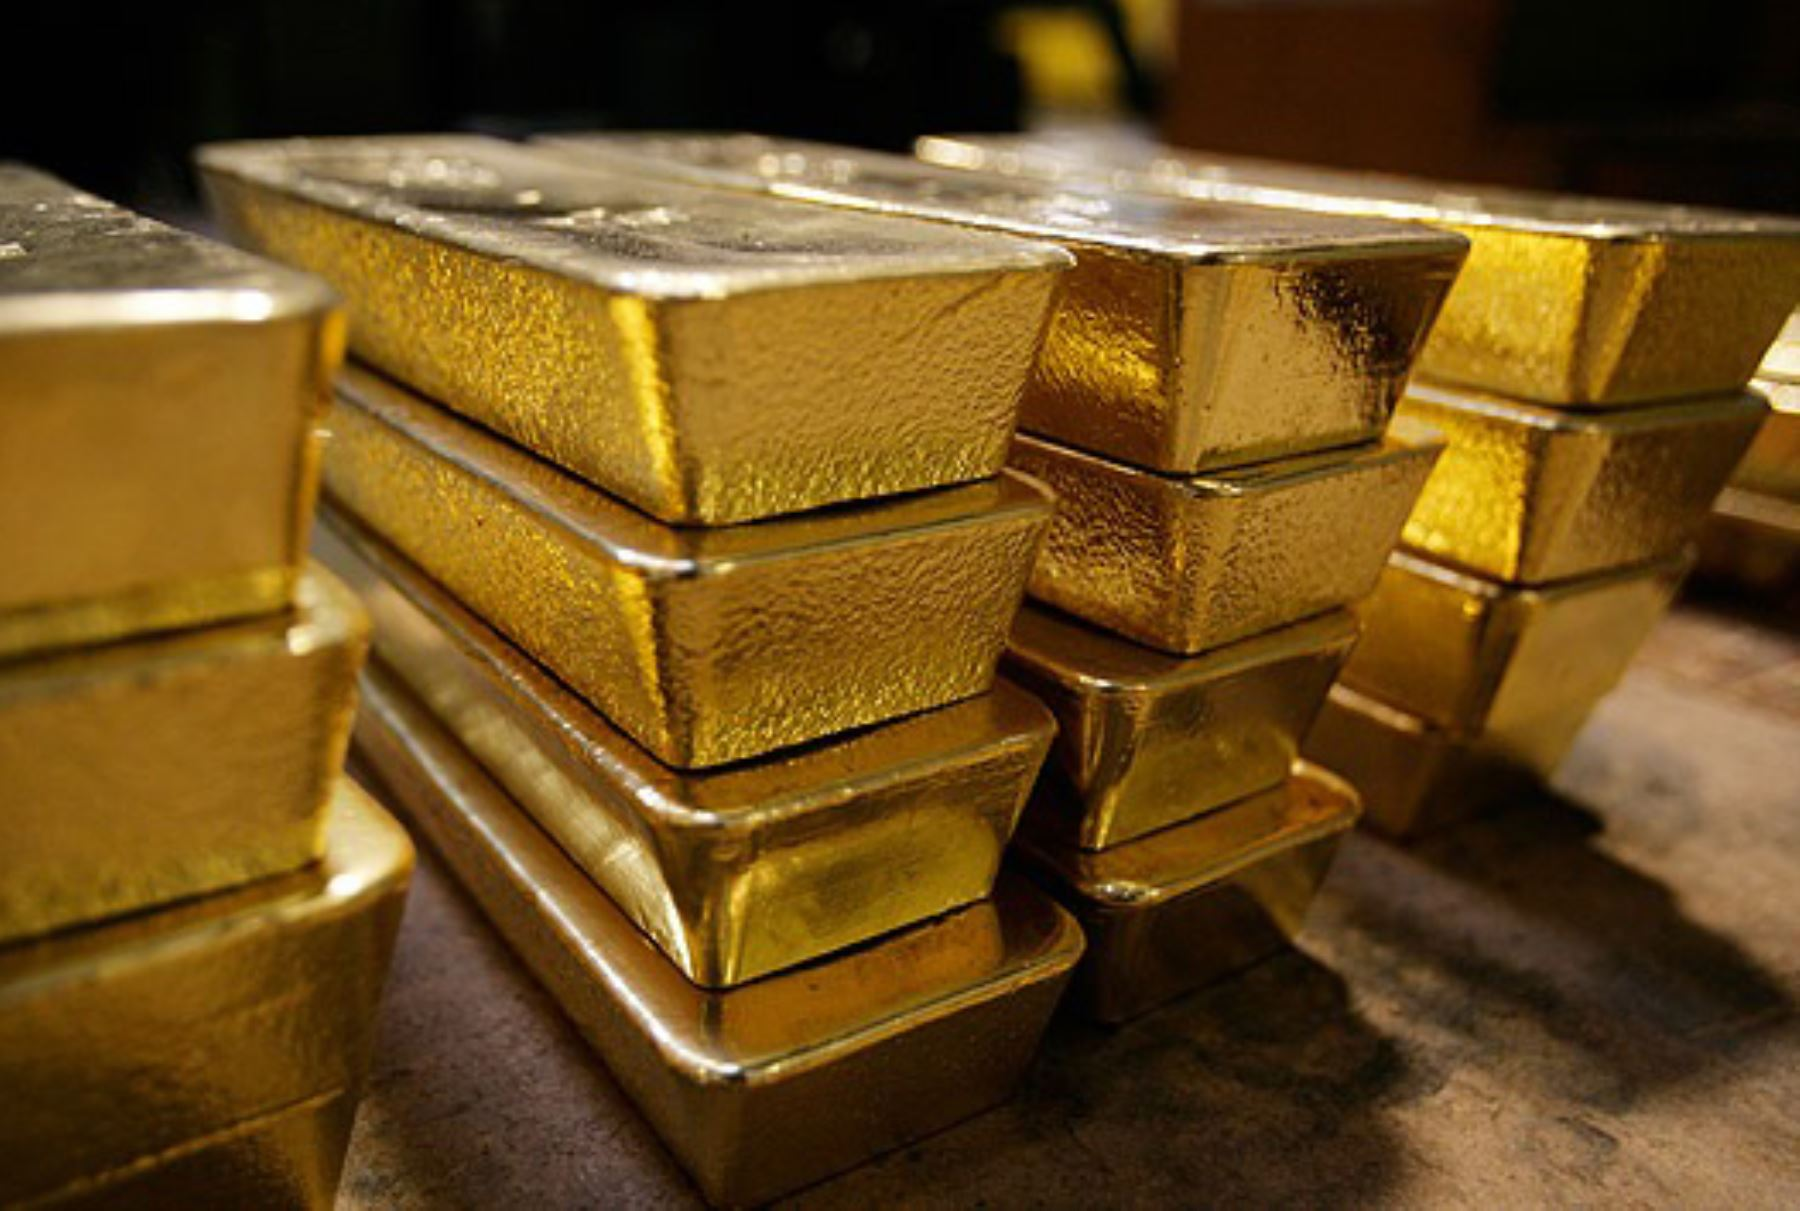 Peru: Gold exports volume up 7% in July 2017 | News